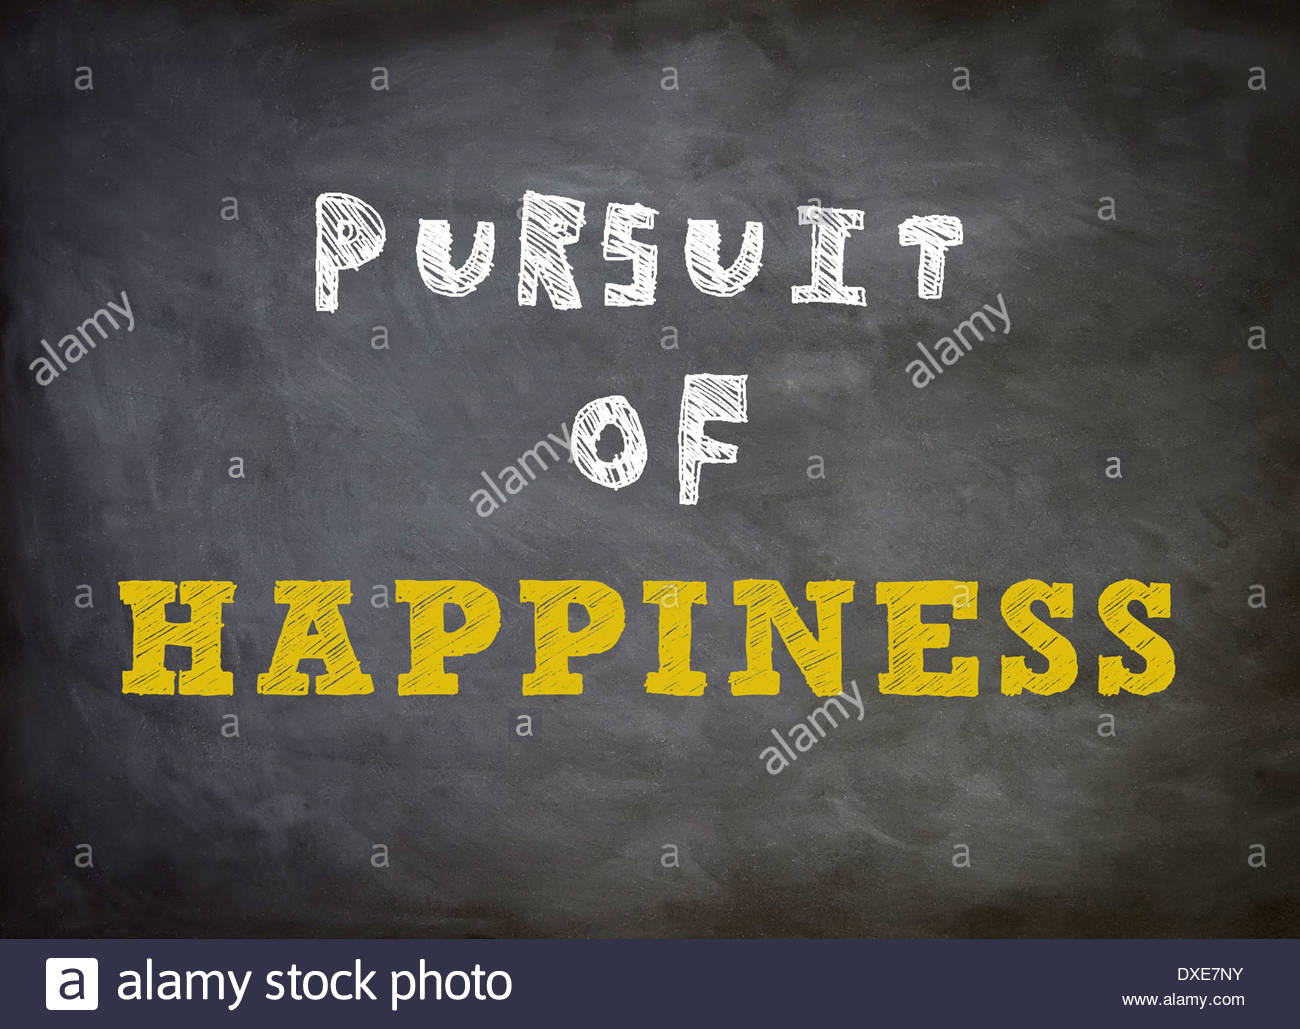 Pursuit of Happiness - Motivation - Stock Image